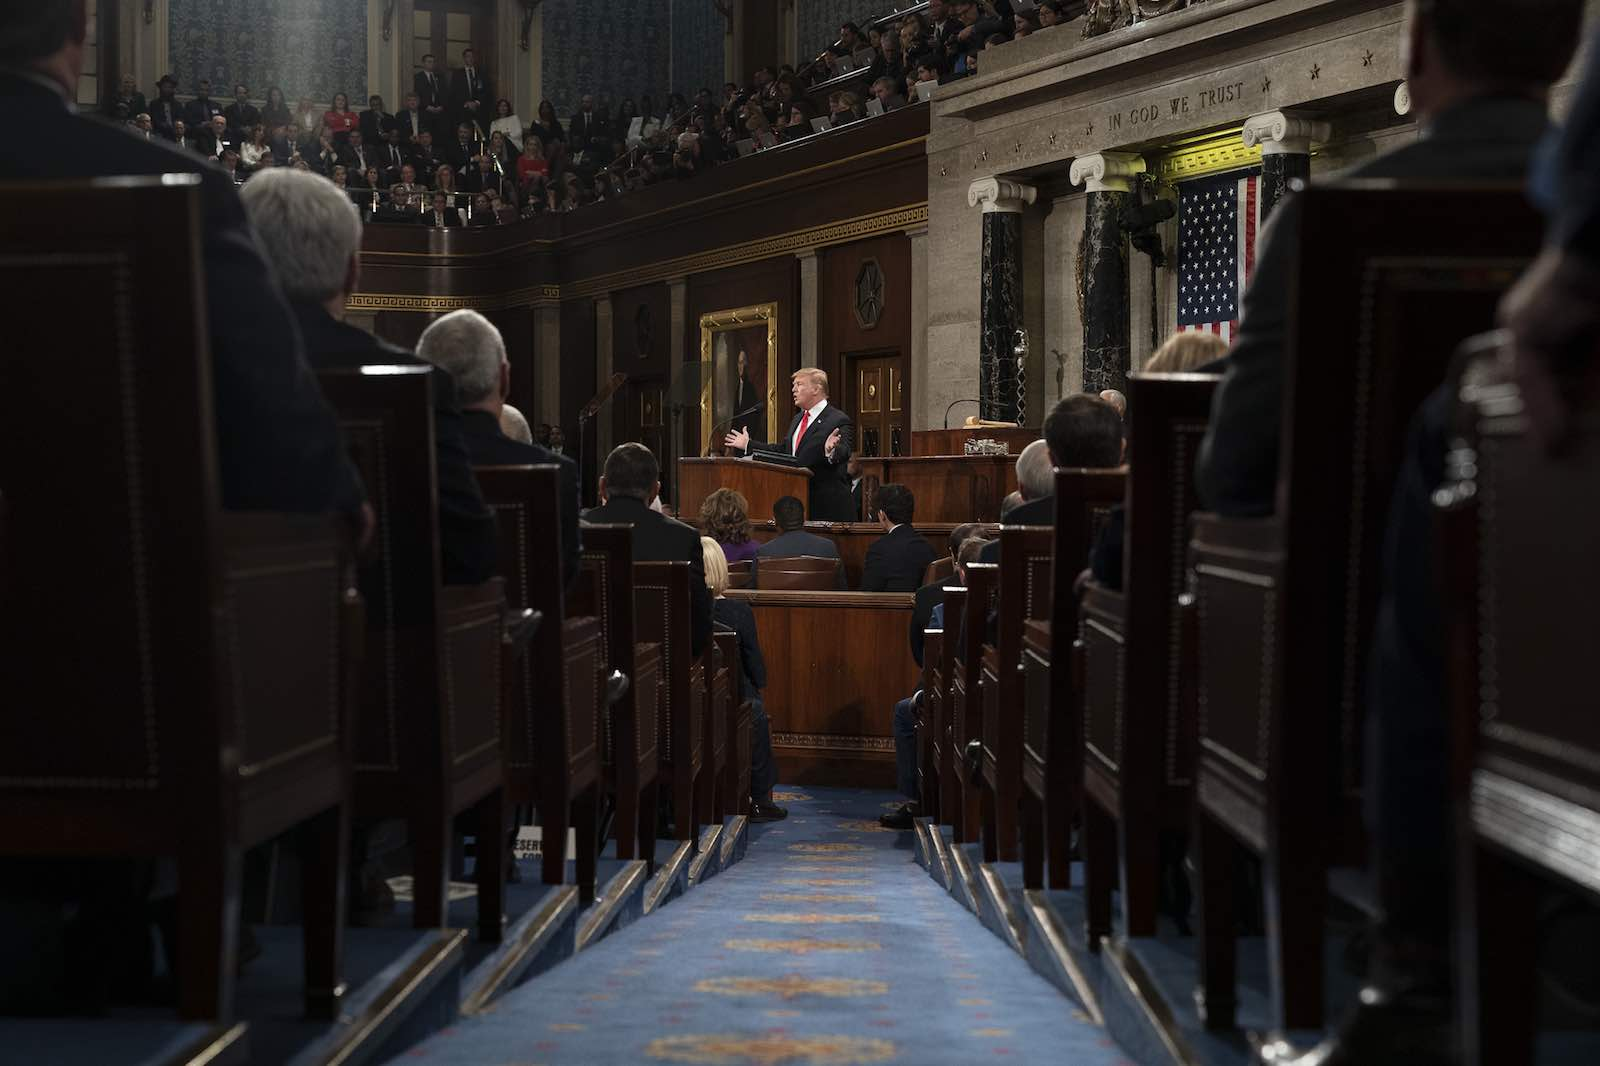 US President Donald Trump delivers the 2019 State of the Union address, Washington, 5 February 2019 (Photo: D. Myles Cullen/Wikimedia Commons)